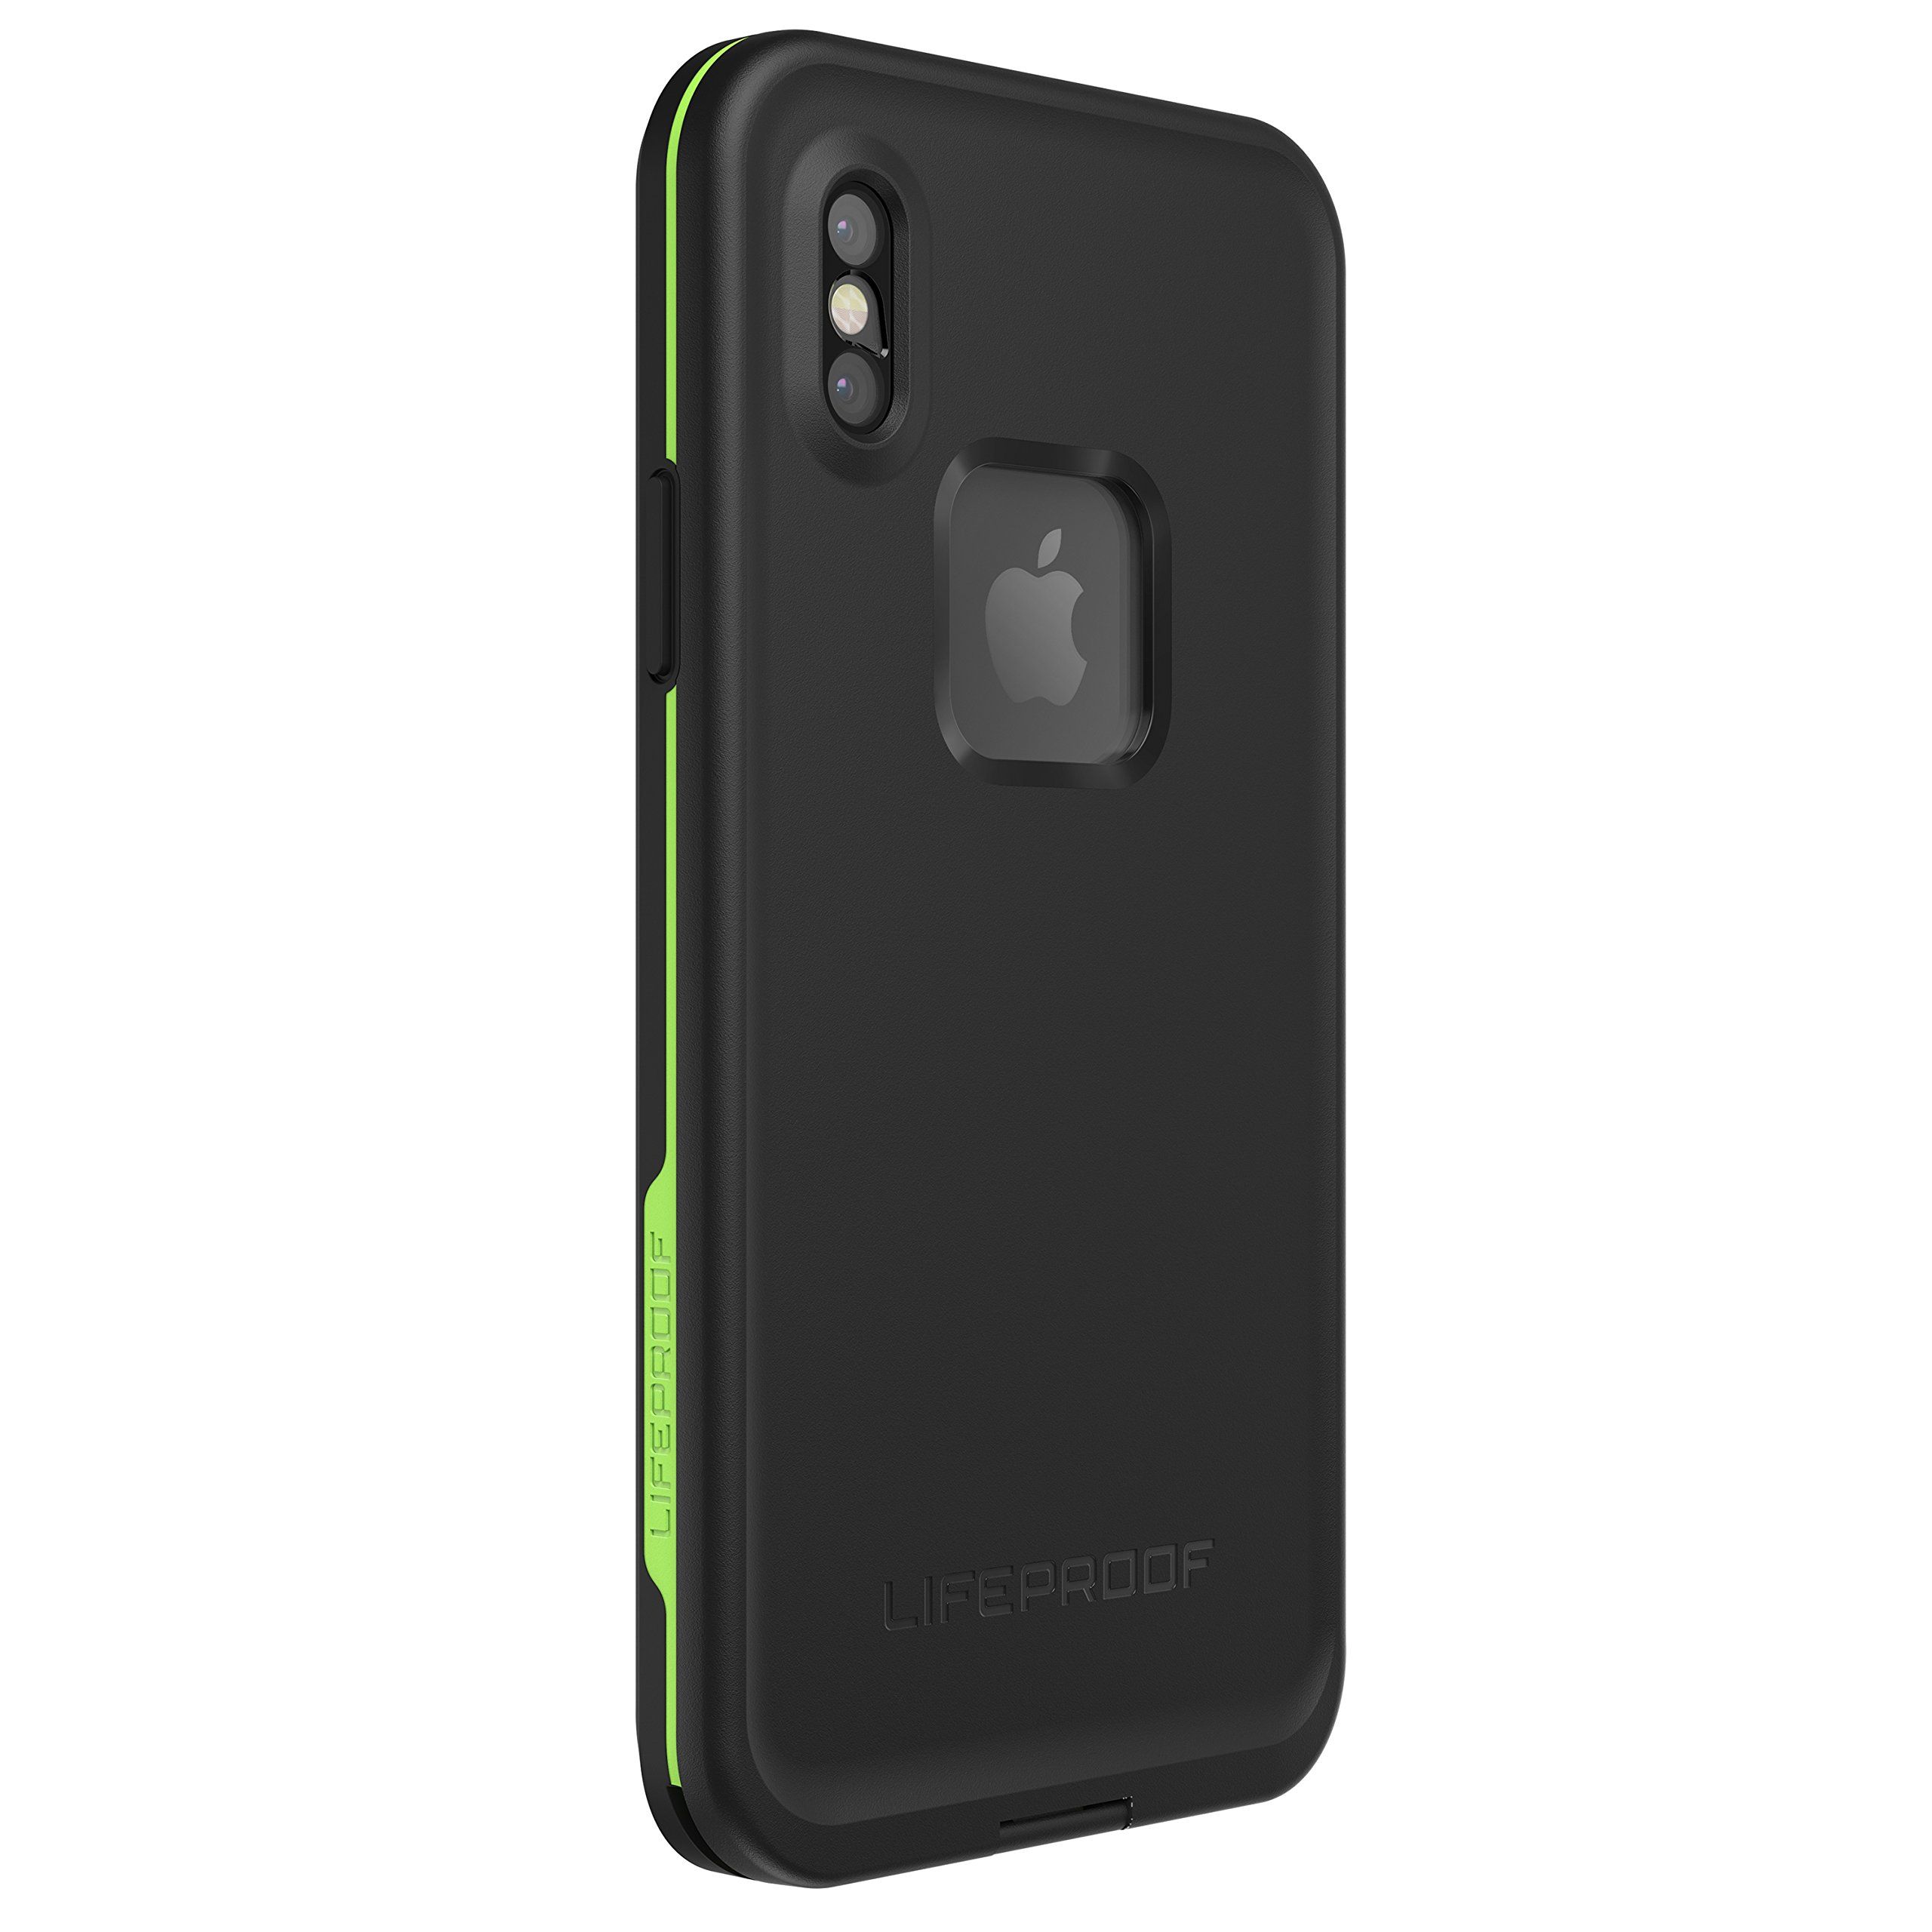 Lifeproof FRĒ SERIES Waterproof Case for iPhone X (ONLY) - Retail Packaging - NIGHT LITE (BLACK/LIME) by LifeProof (Image #8)